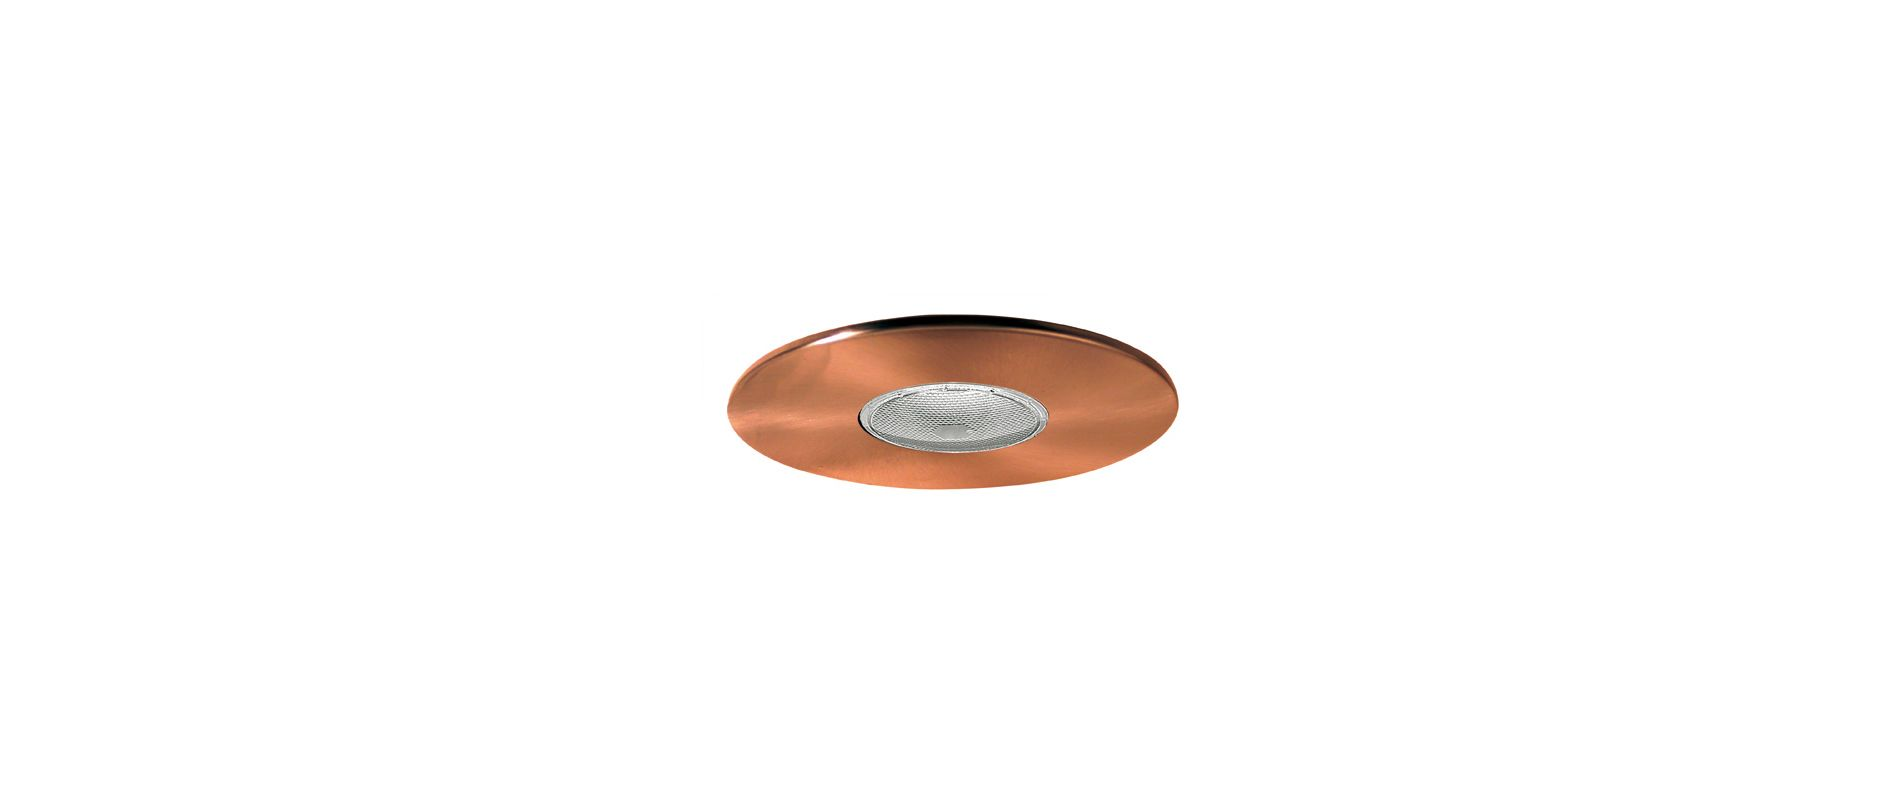 "Elco EL30 6"" Open Trim for 75W Bulbs Copper Recessed Lights Shower"